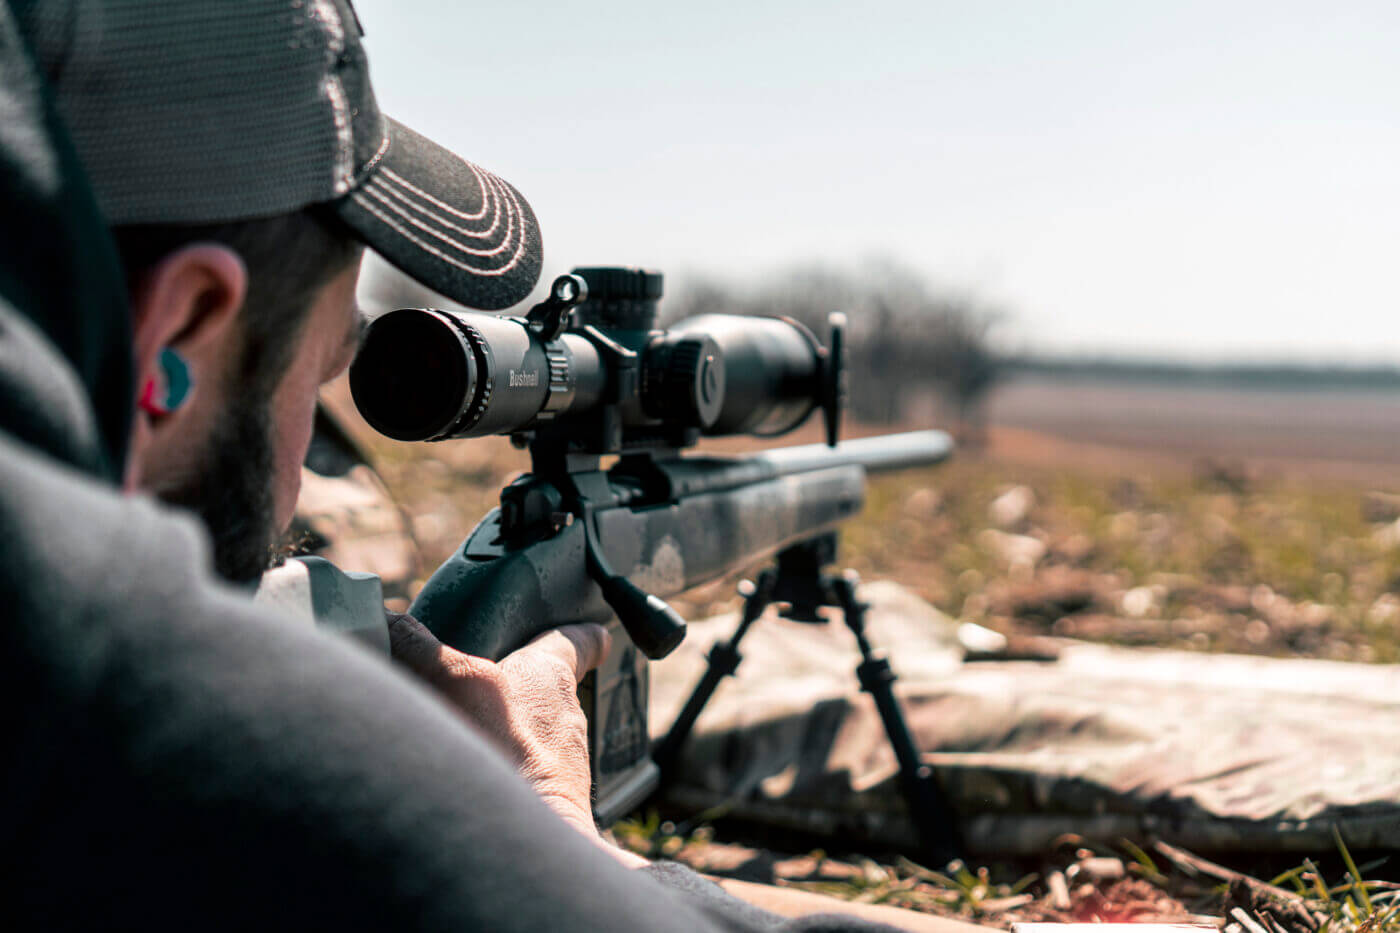 Testing the Bushnell Elite Tactical XRS II on the range